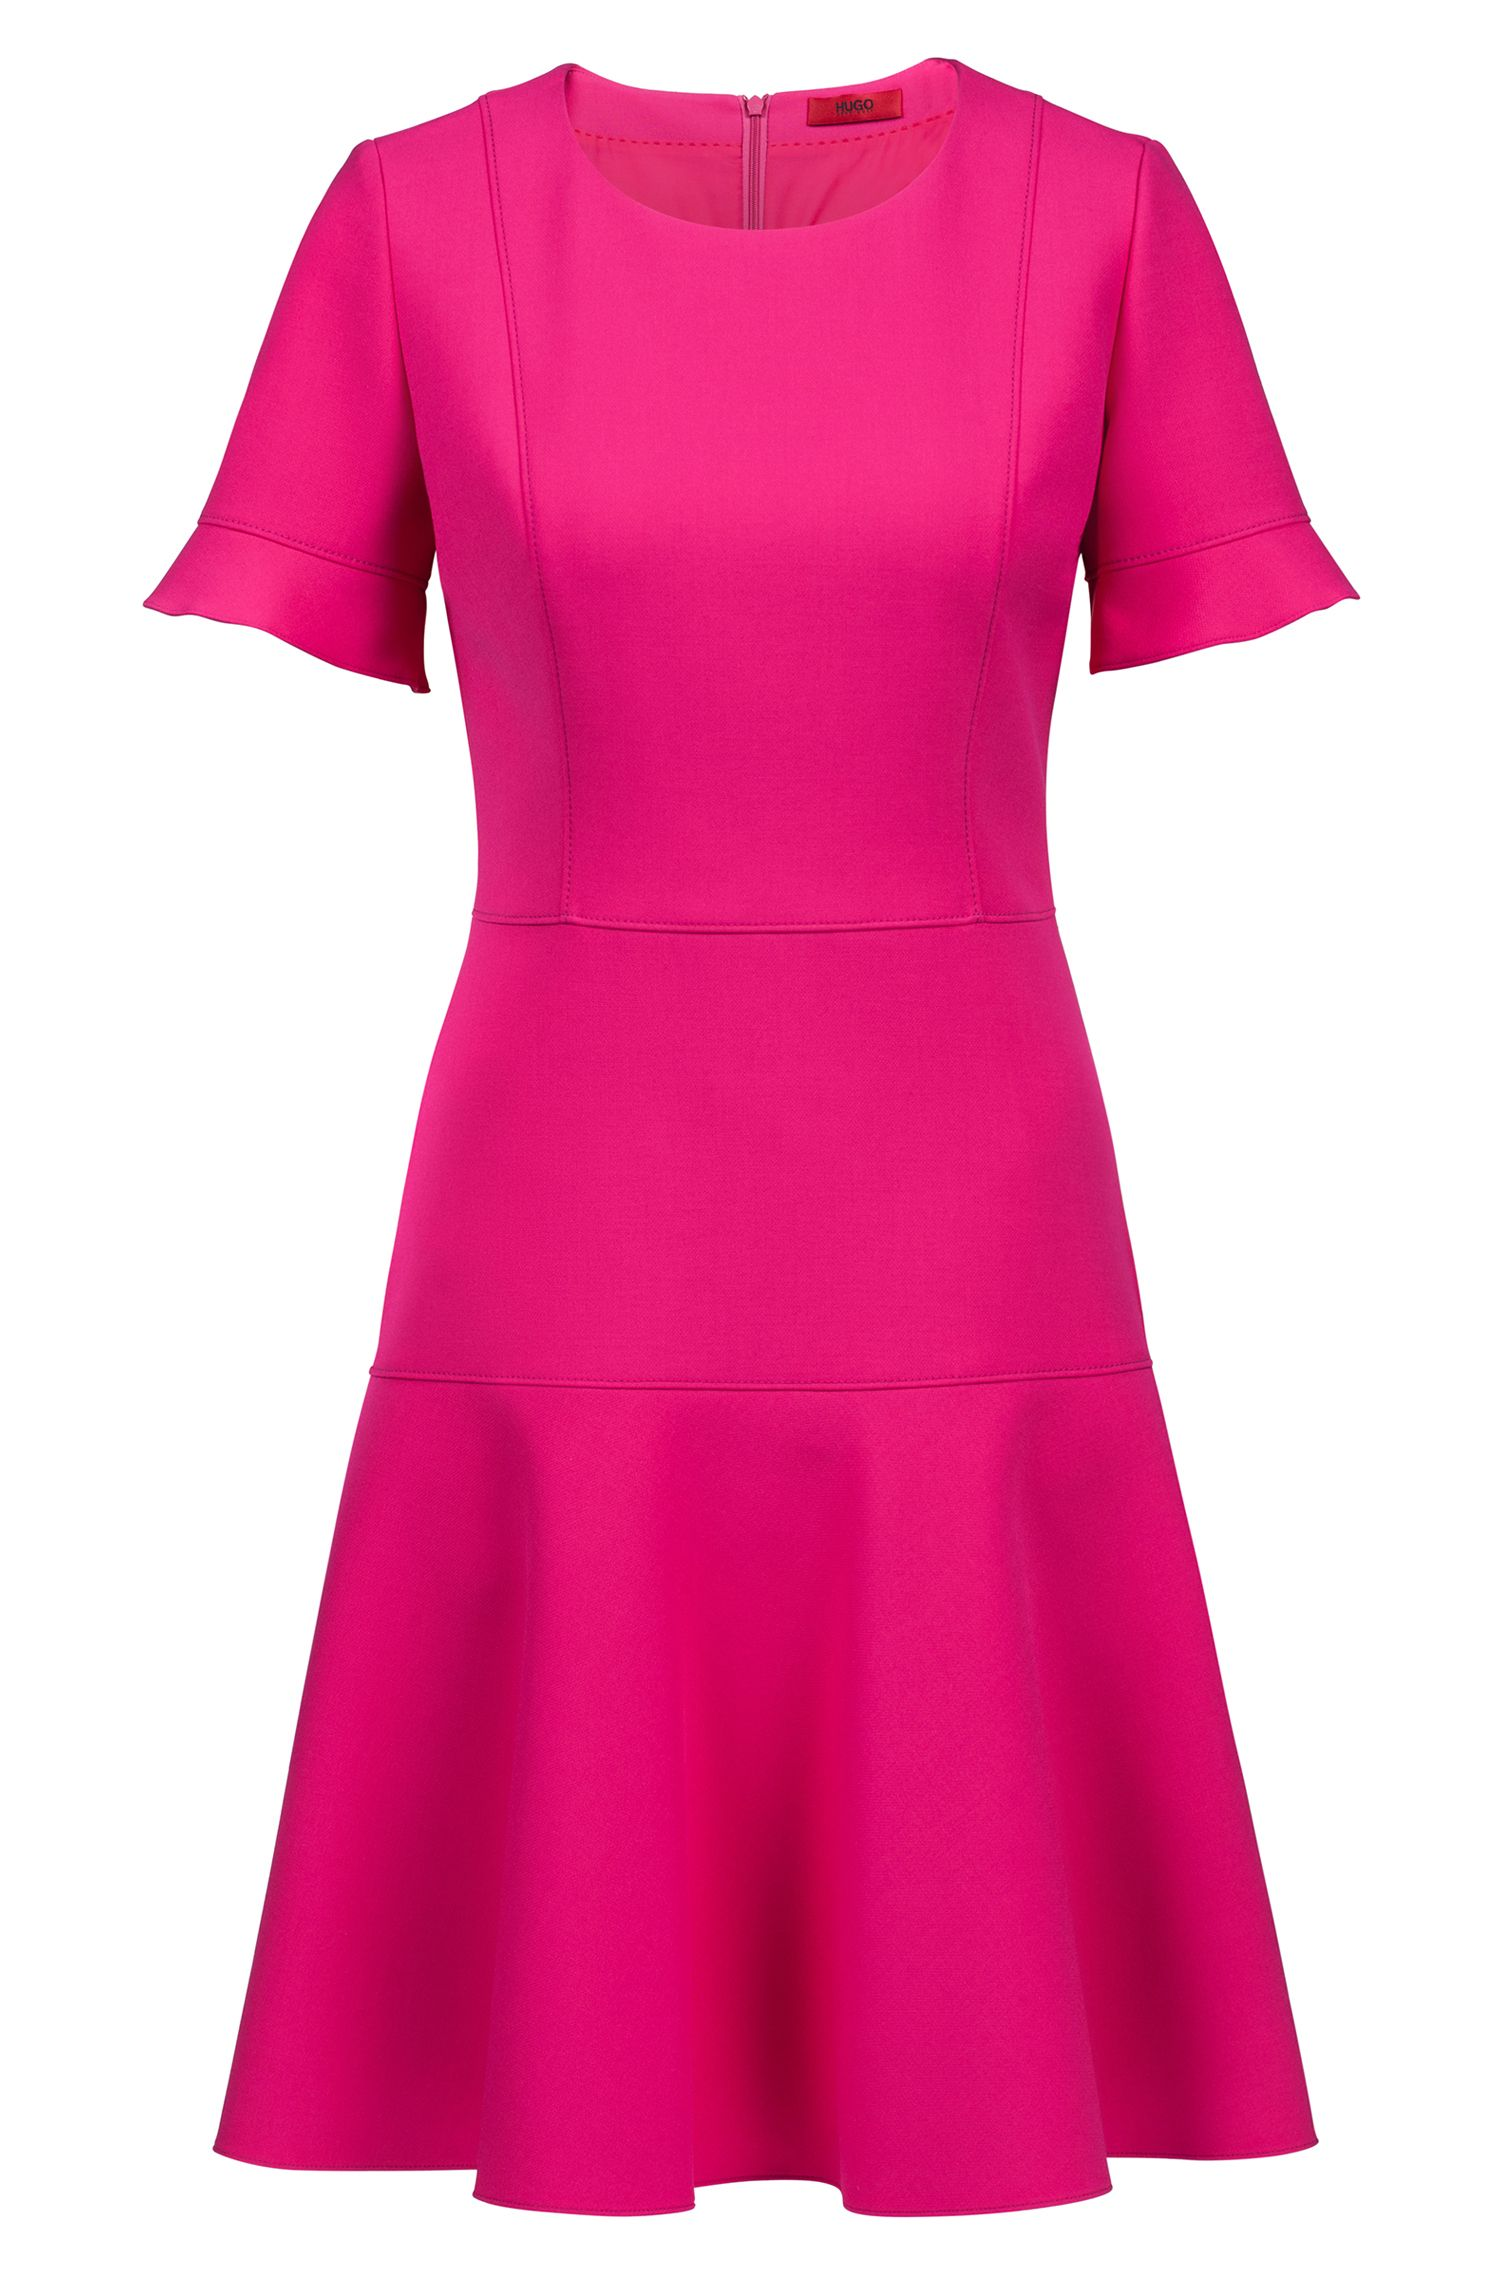 Short-sleeved dress in stretch fabric with flared skirt